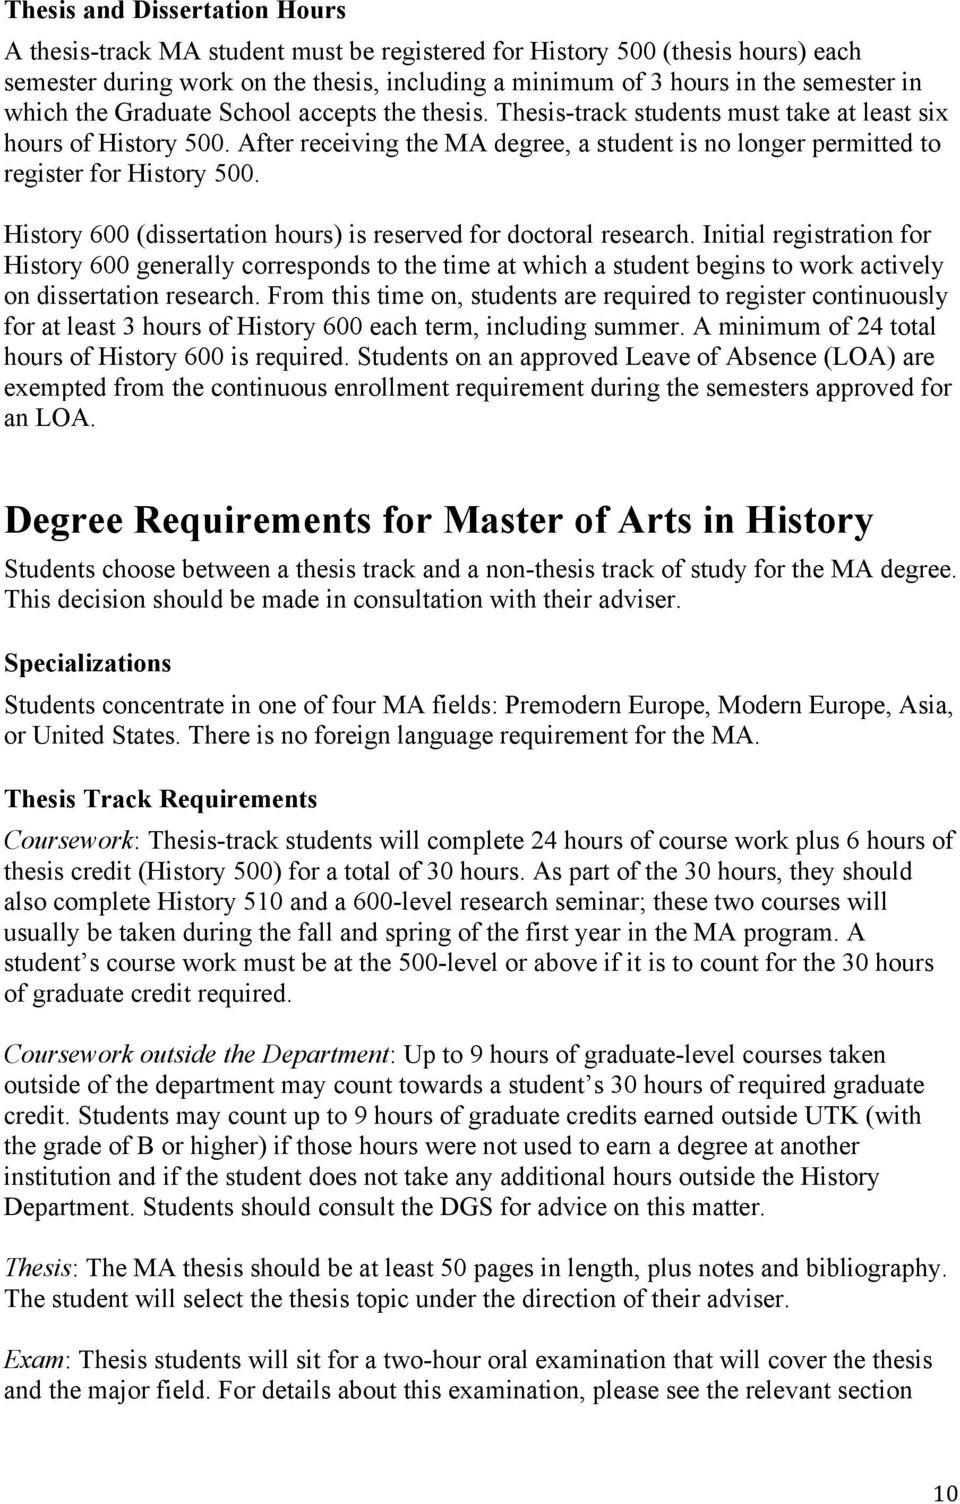 After receiving the MA degree, a student is no longer permitted to register for History 500. History 600 (dissertation hours) is reserved for doctoral research.